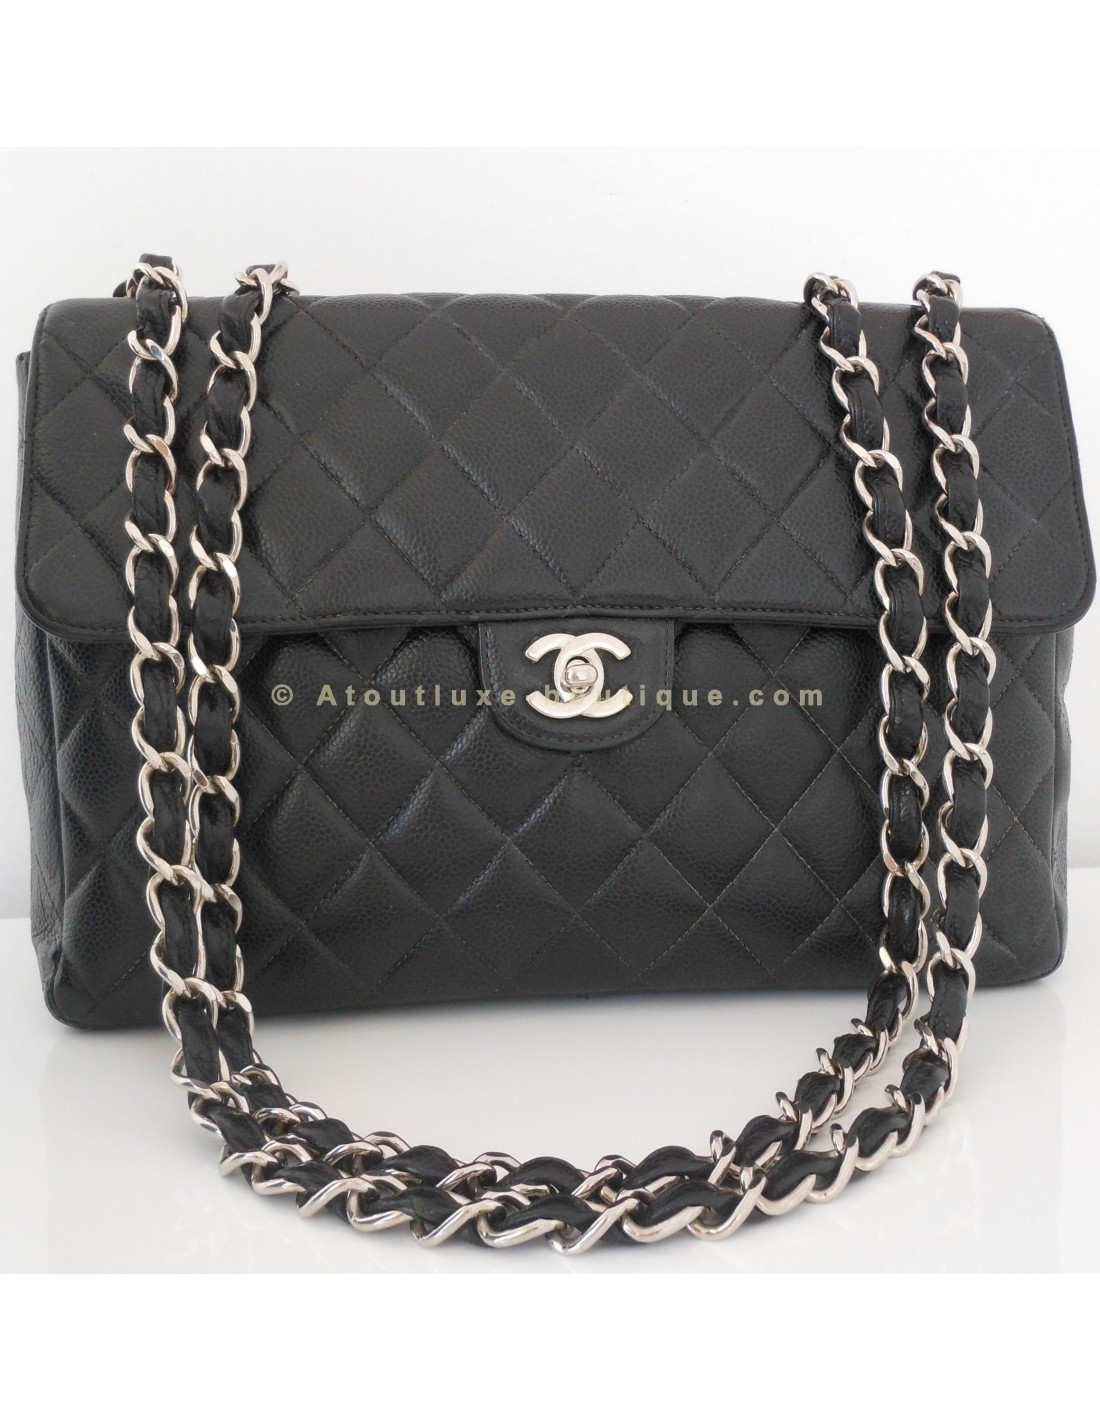 SAC CHANEL TIMELESS GRAND MODELE - Atoutluxe Boutique 280f3f67718b